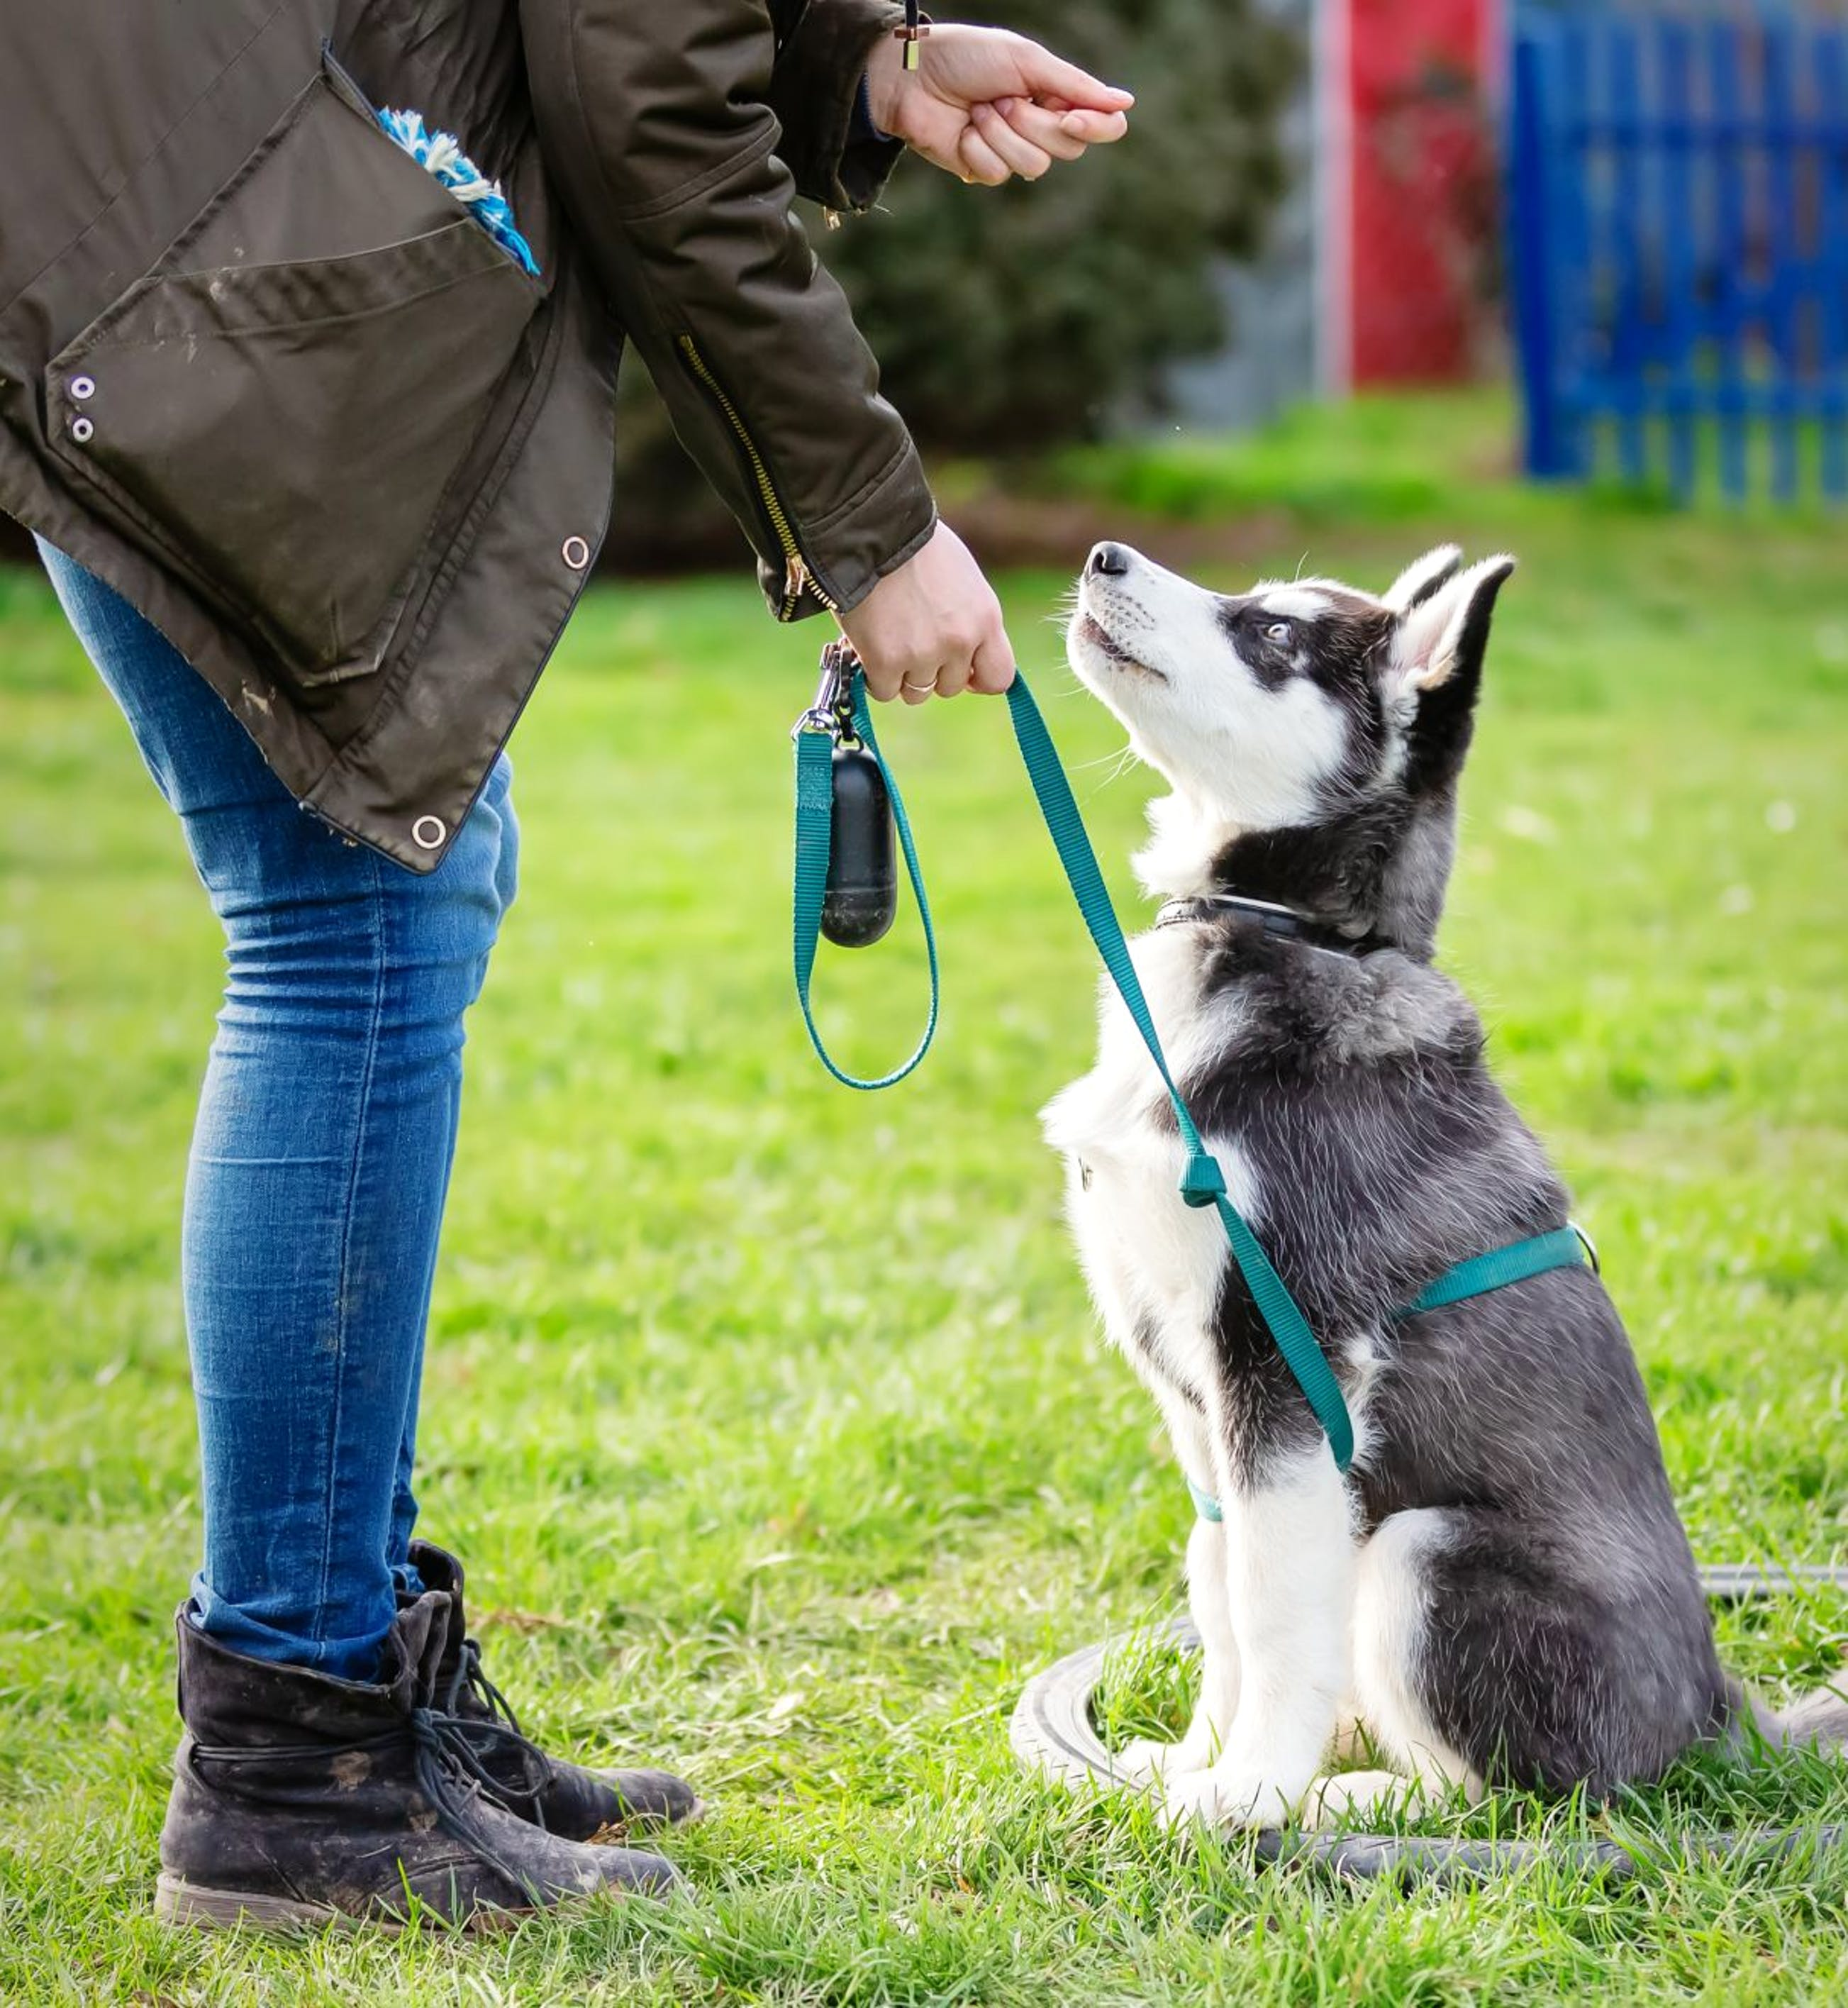 Young Alaskan Malamute learning  tricks with its owner